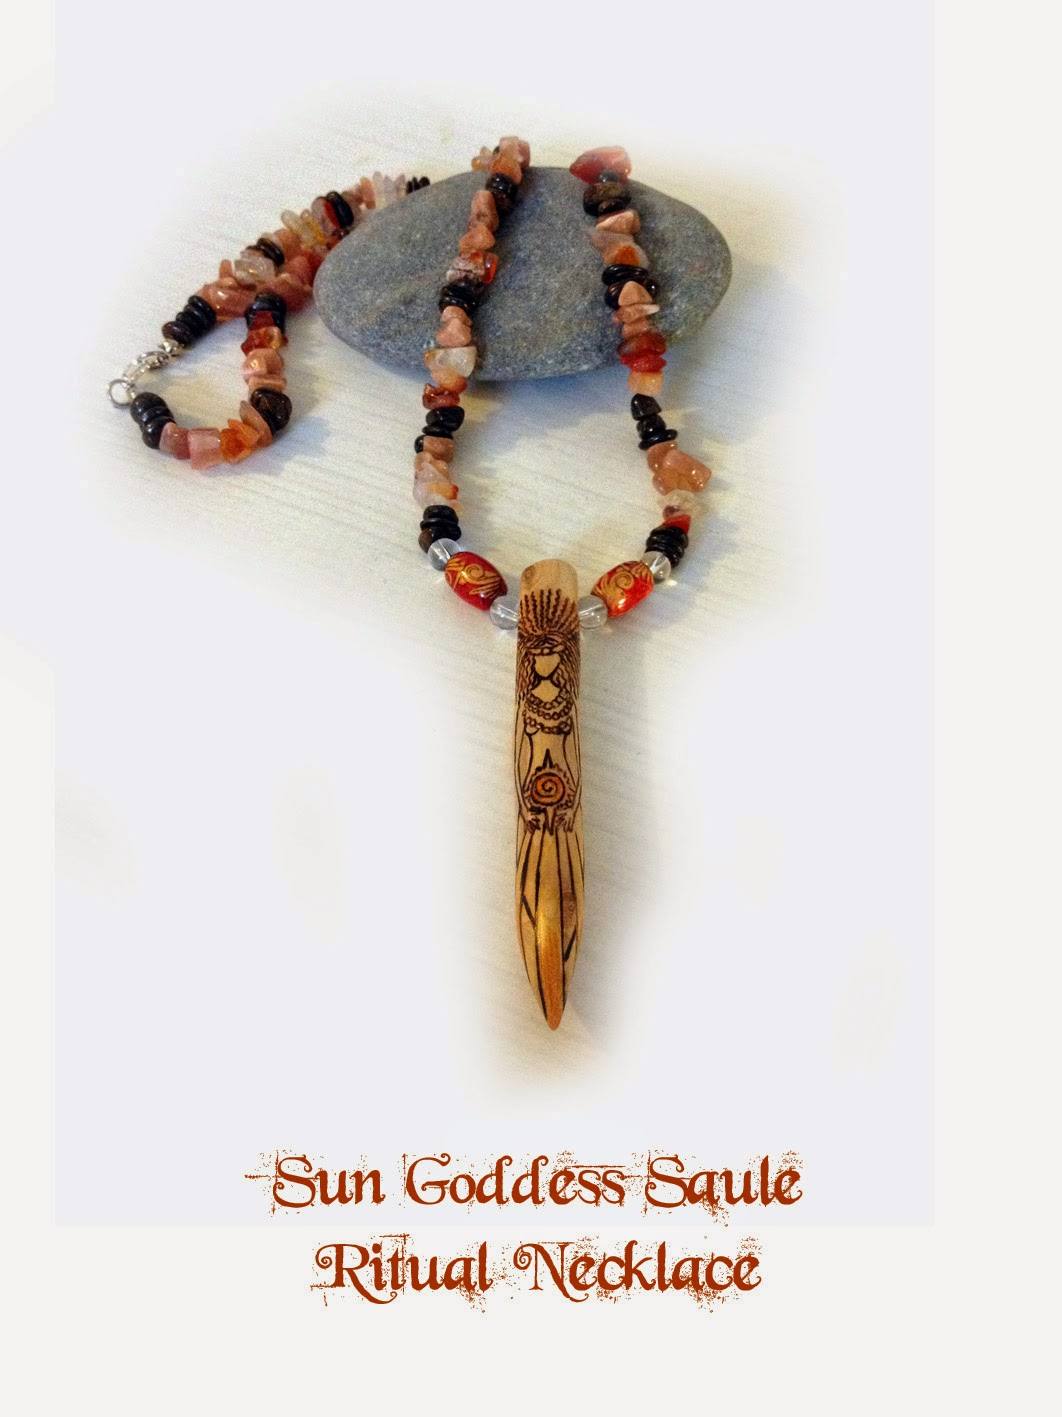 Sun Goddess Saule Ritual Necklace from MoonsCrafts